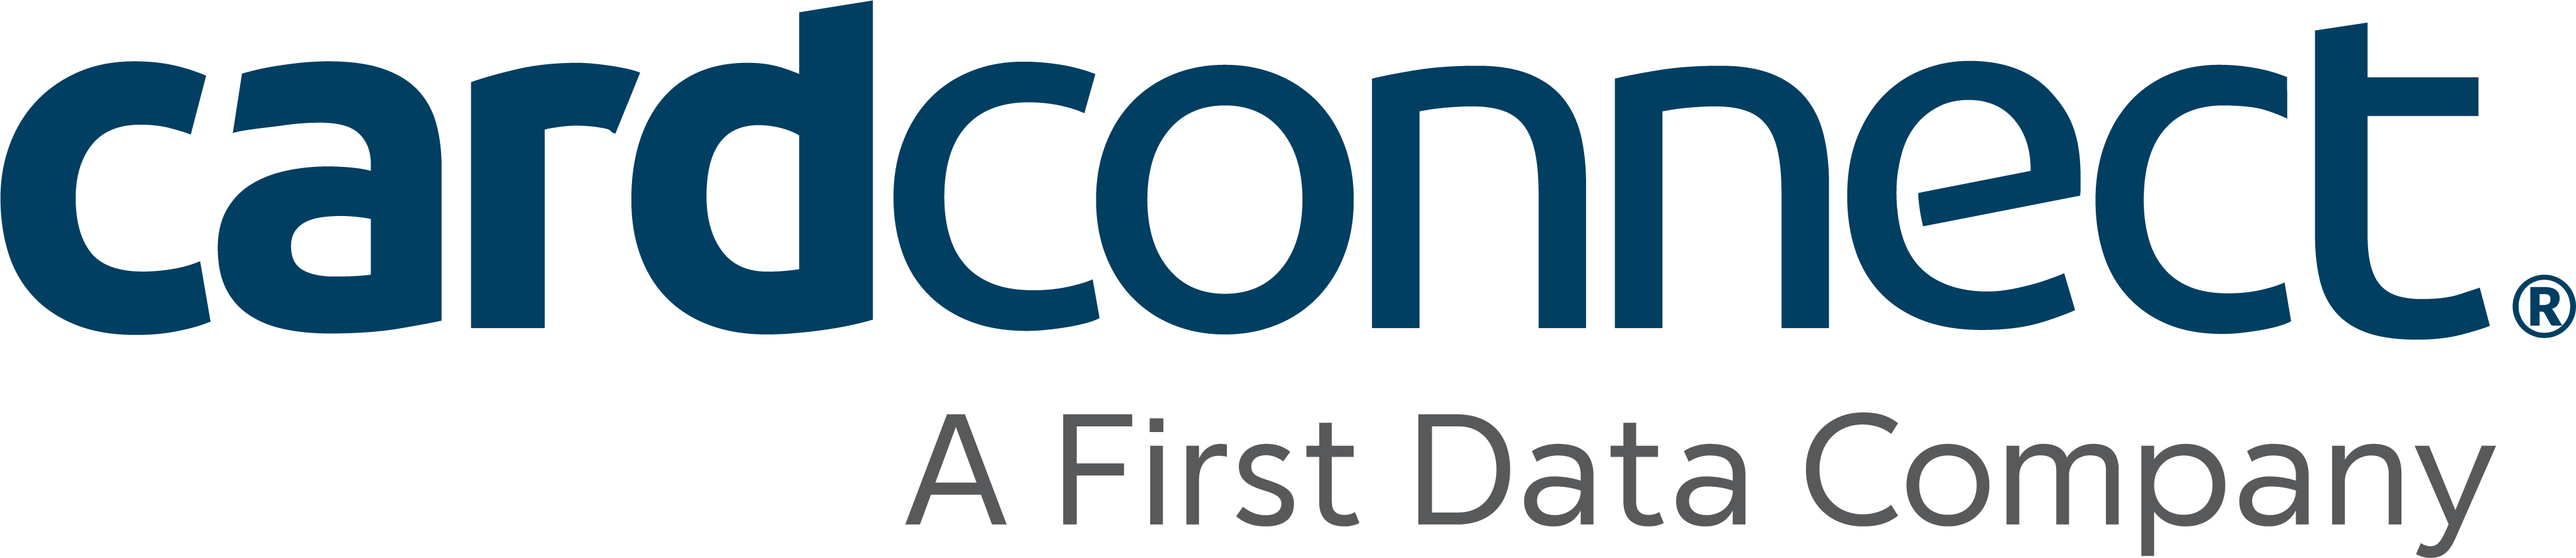 CardConnect A First Data Company Logo